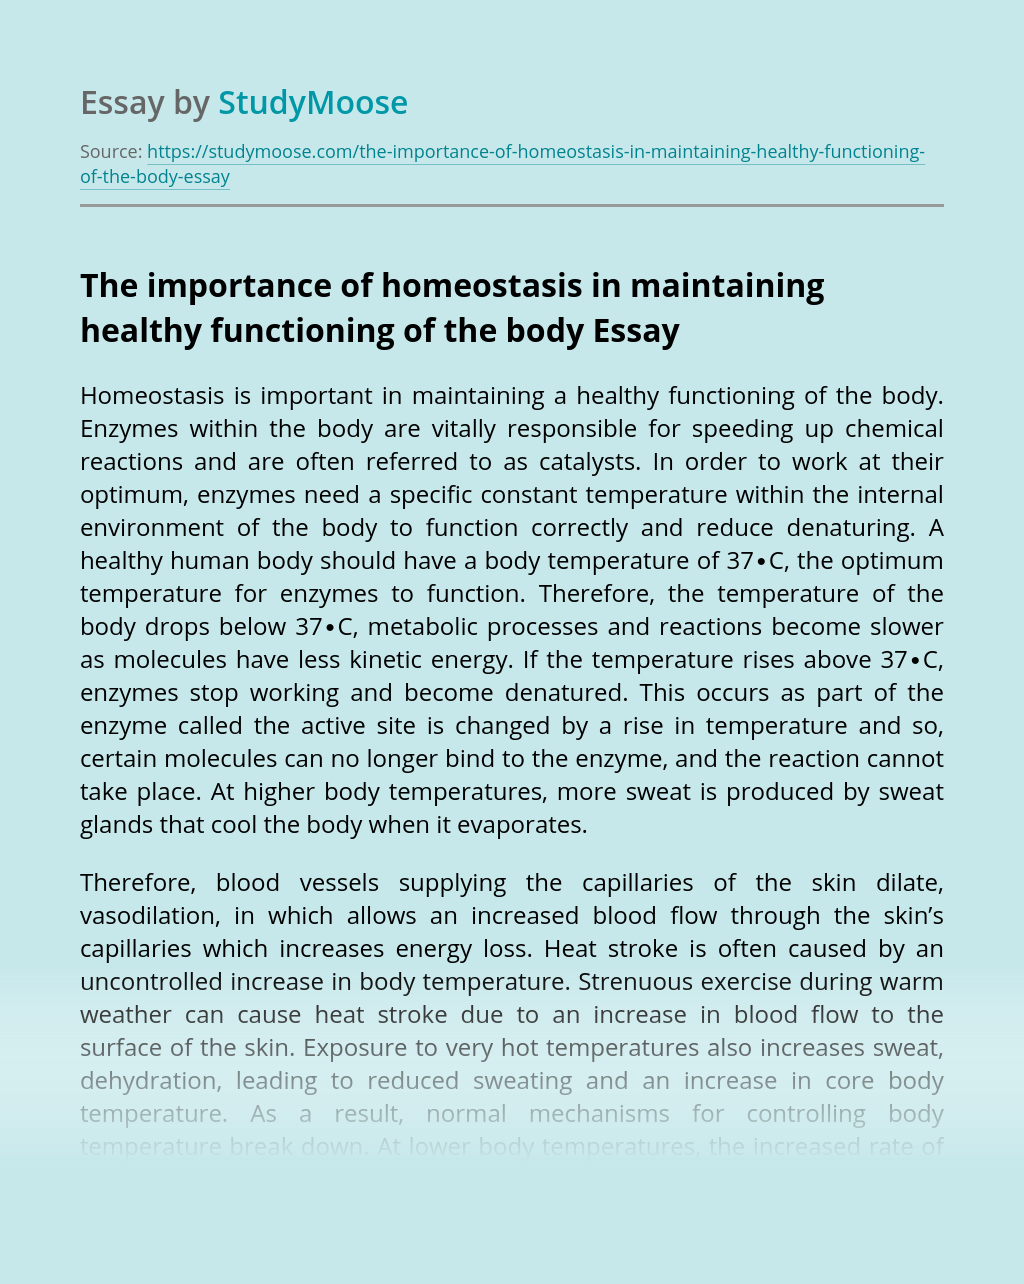 The importance of homeostasis in maintaining healthy functioning of the body